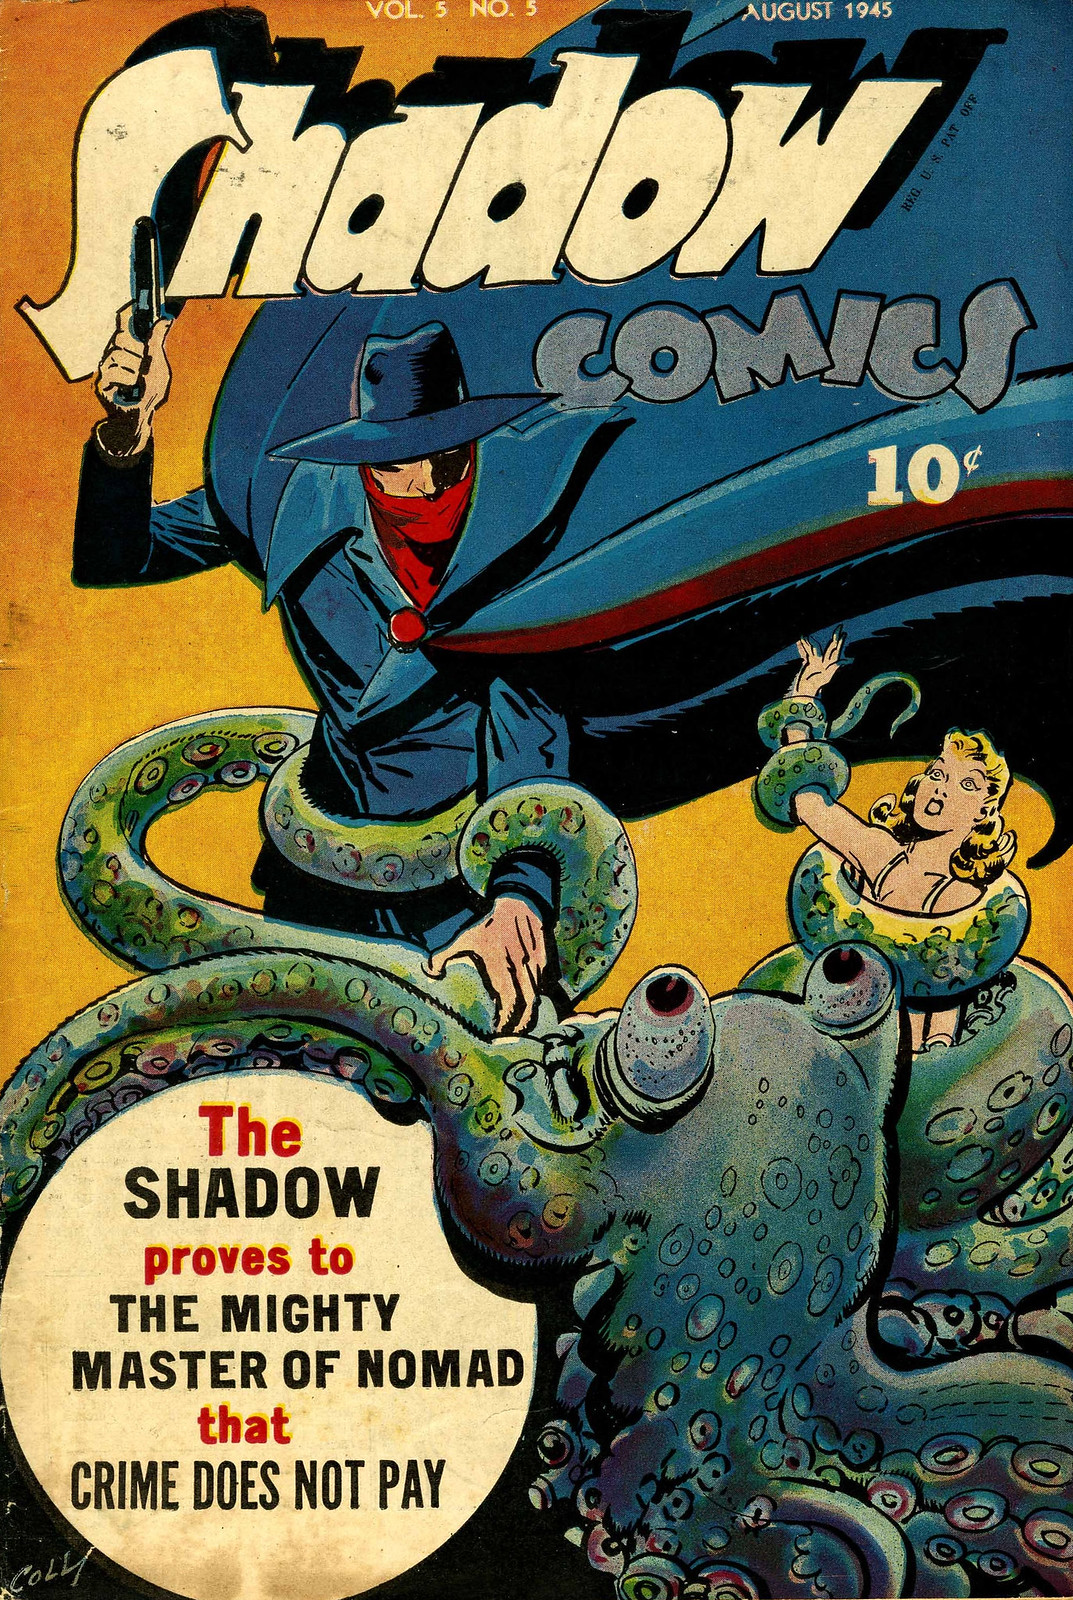 Shadow Comics v5 #5 (Street & Smith Pub., 1945) Charles Coll Cover